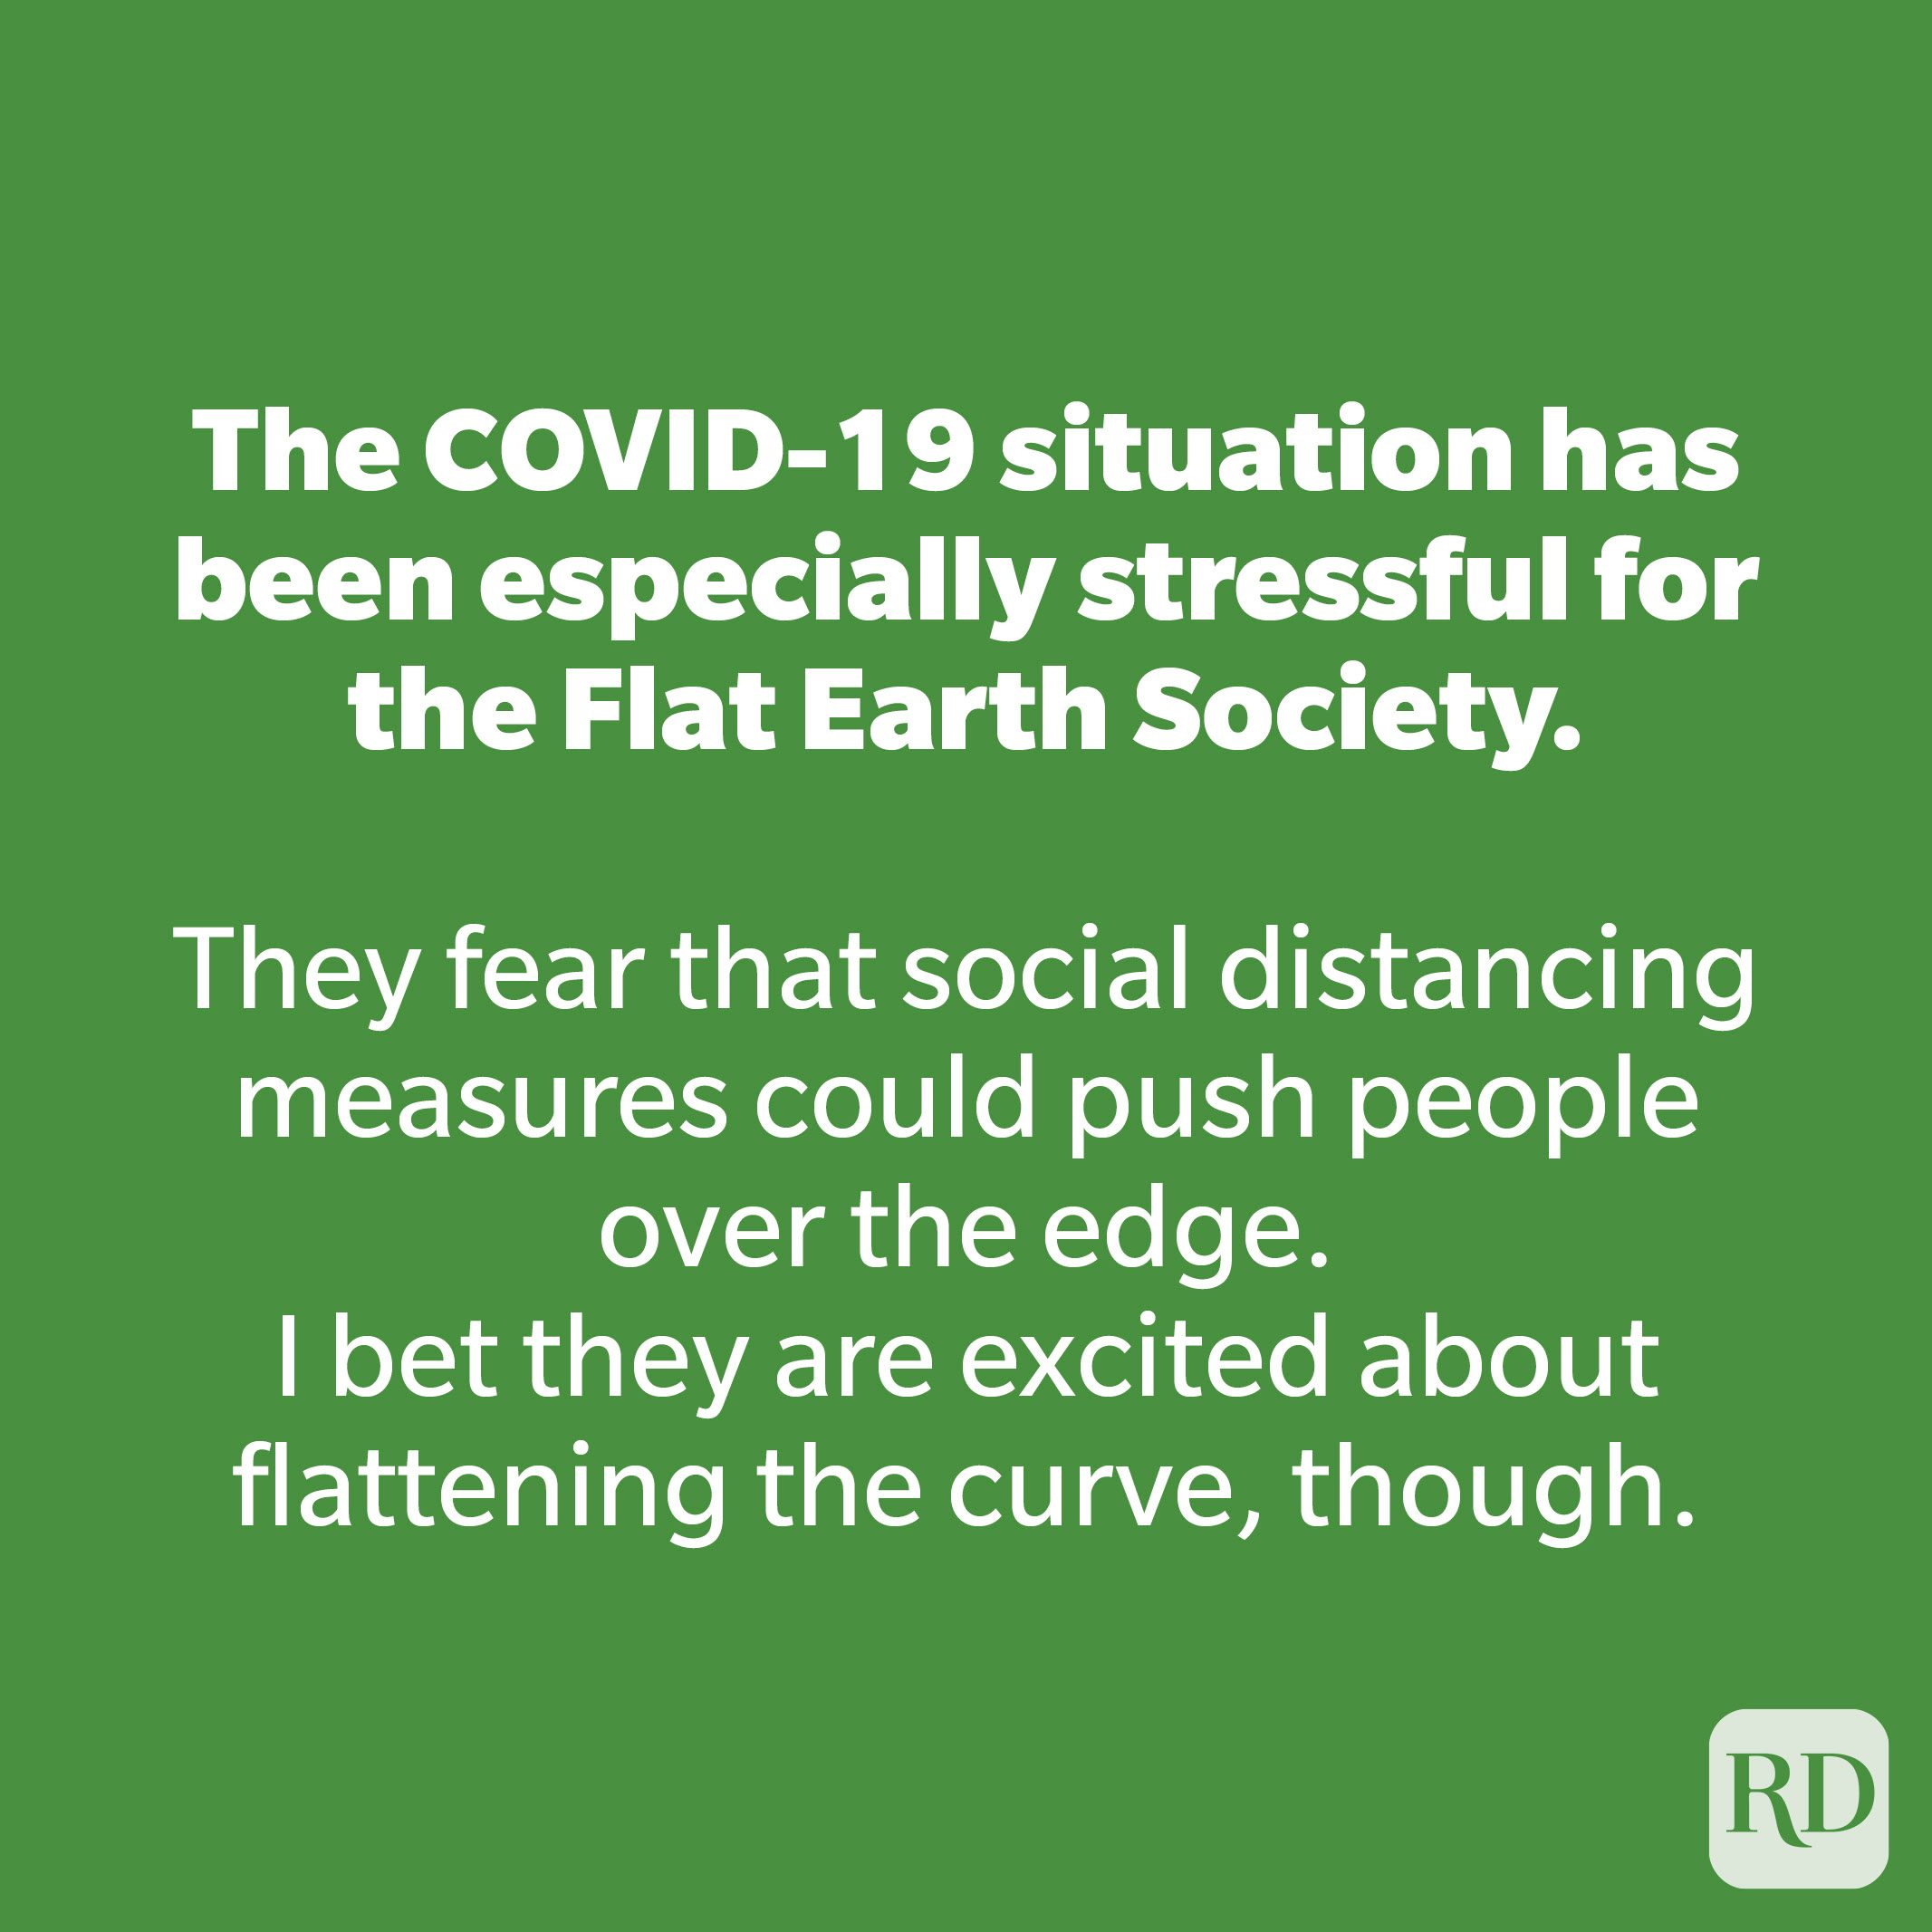 The COVID-19 situation has been especially stressful for the Flat Earth Society.